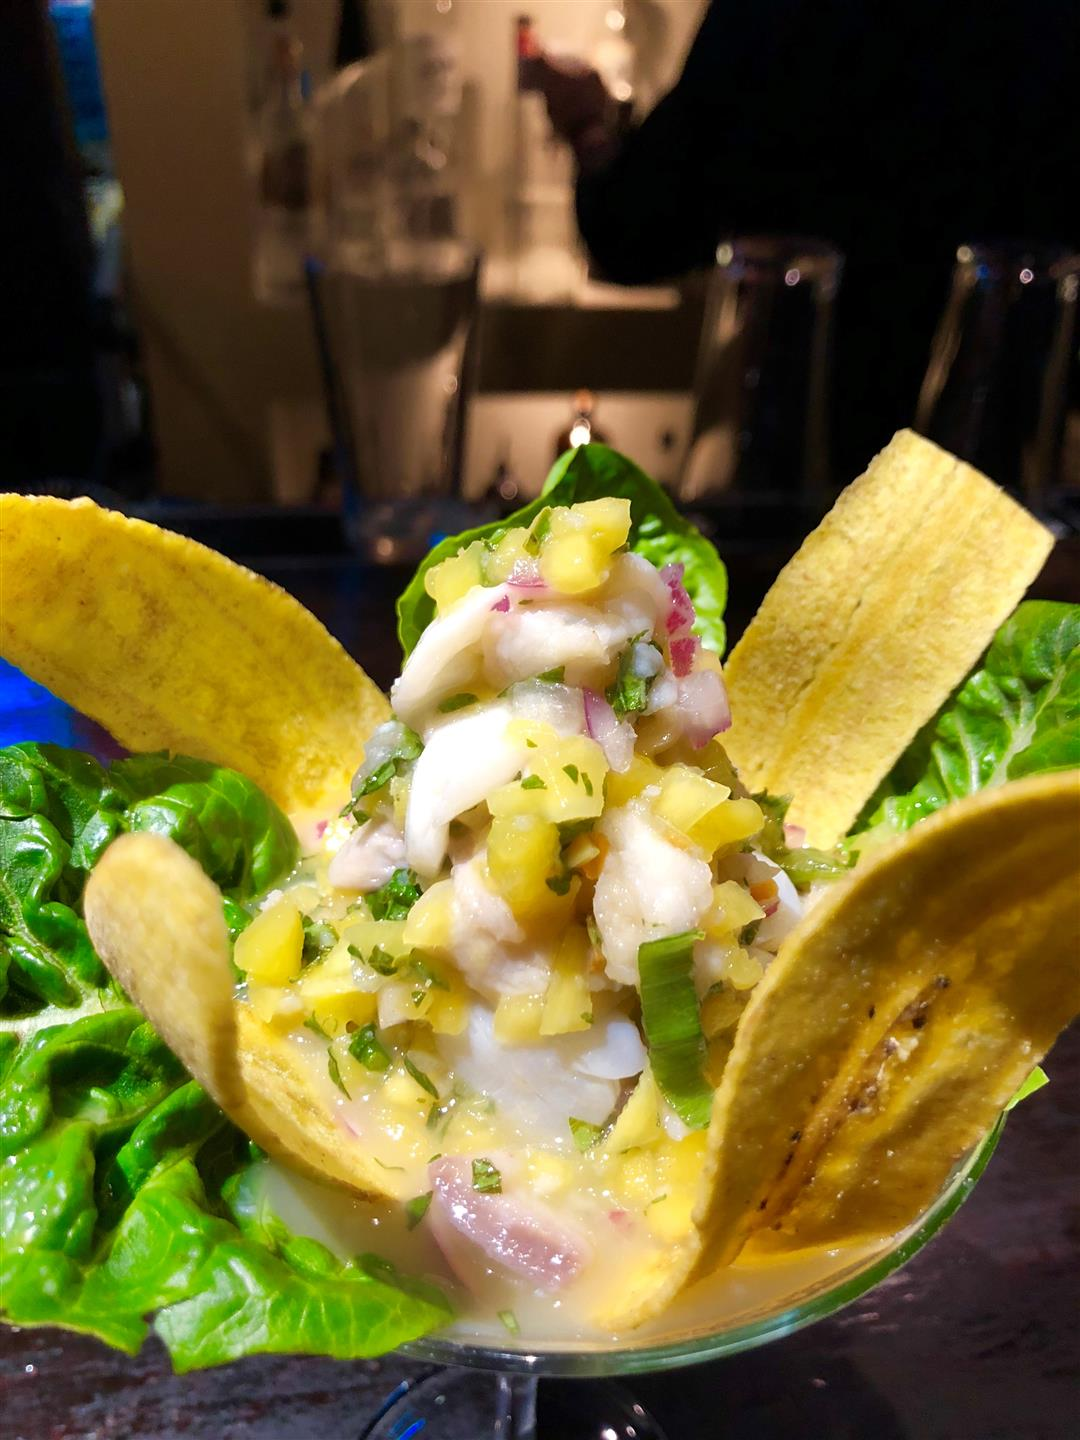 Shrimp ceviche topped with sliced avocado and plantain chips